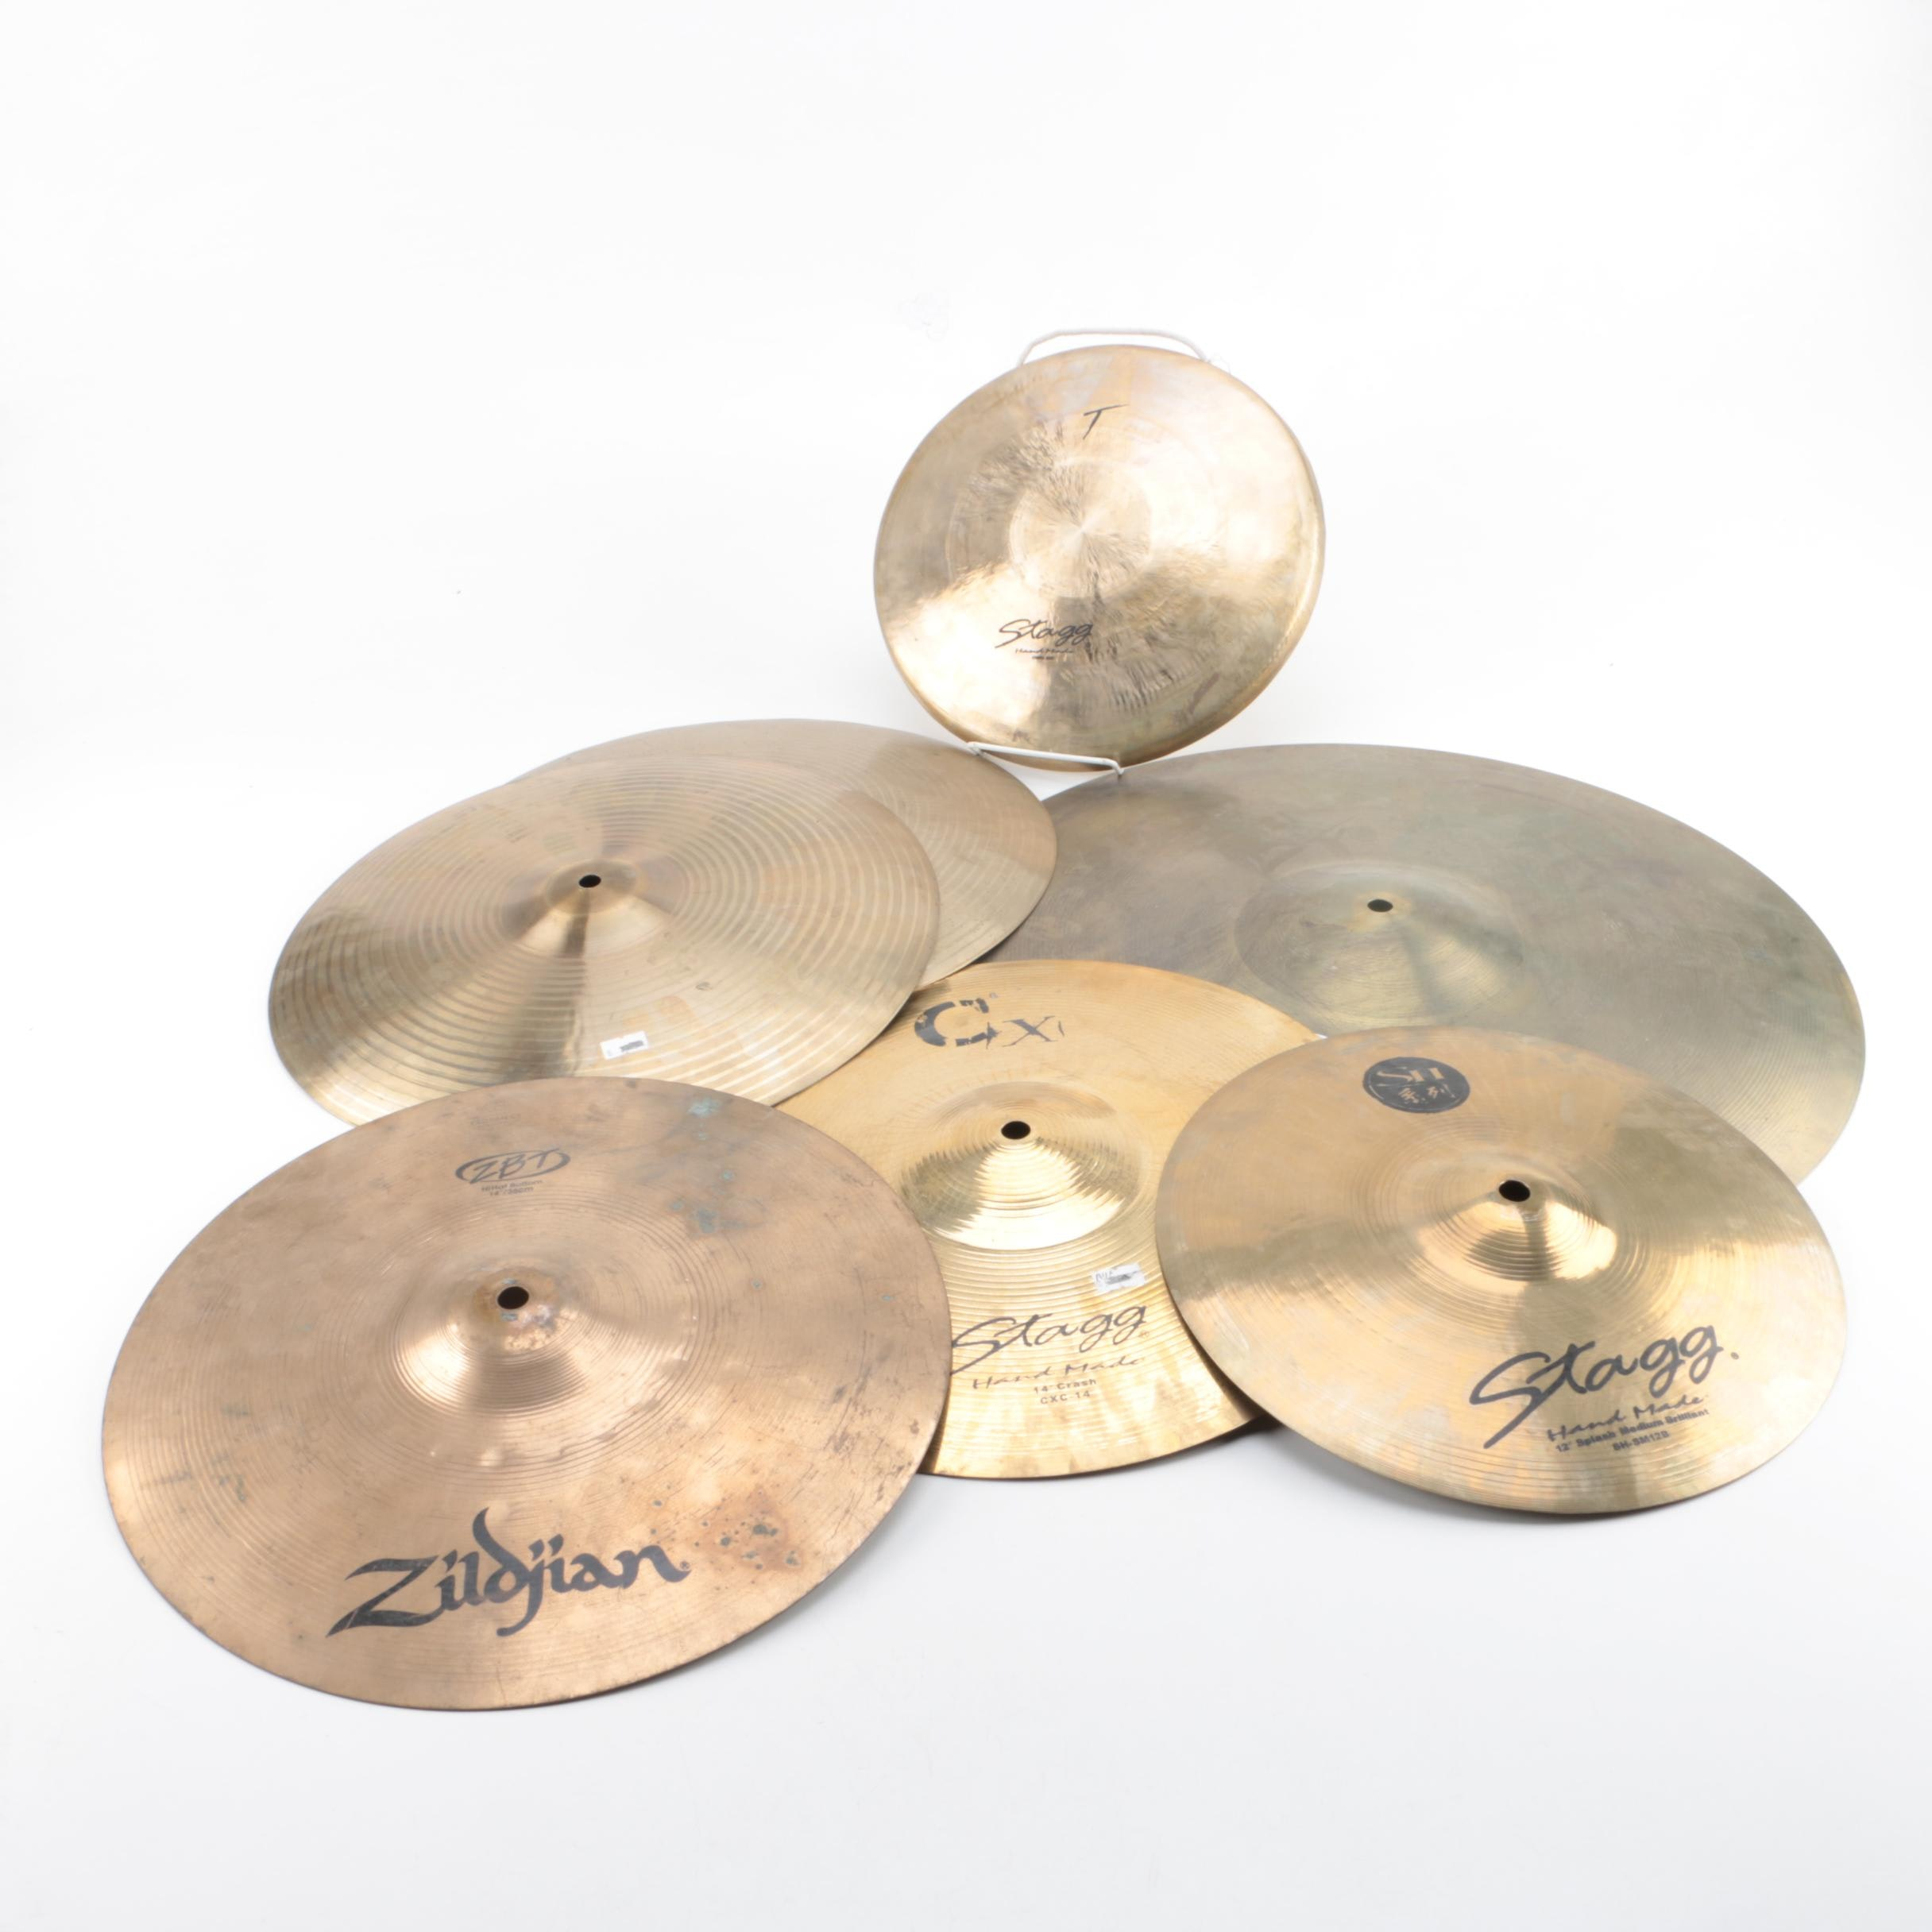 Crash and Splash Cymbals Including Stagg and Zildjian